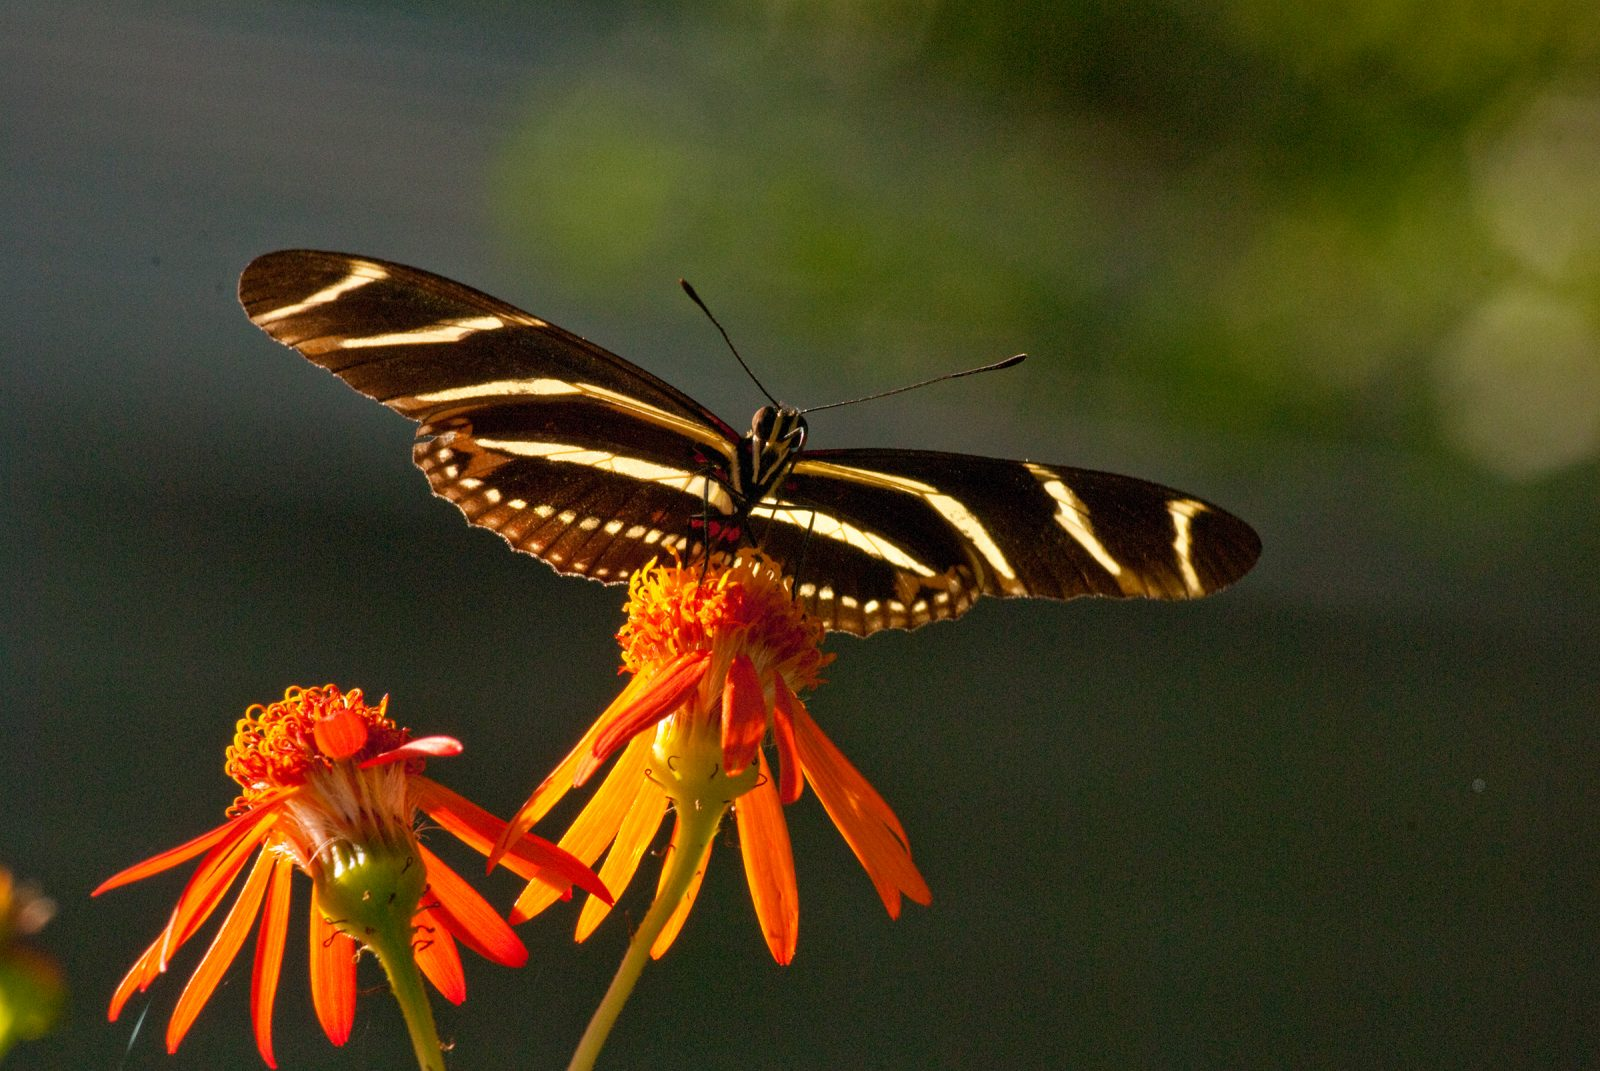 Zebra Longwing sipping nectar